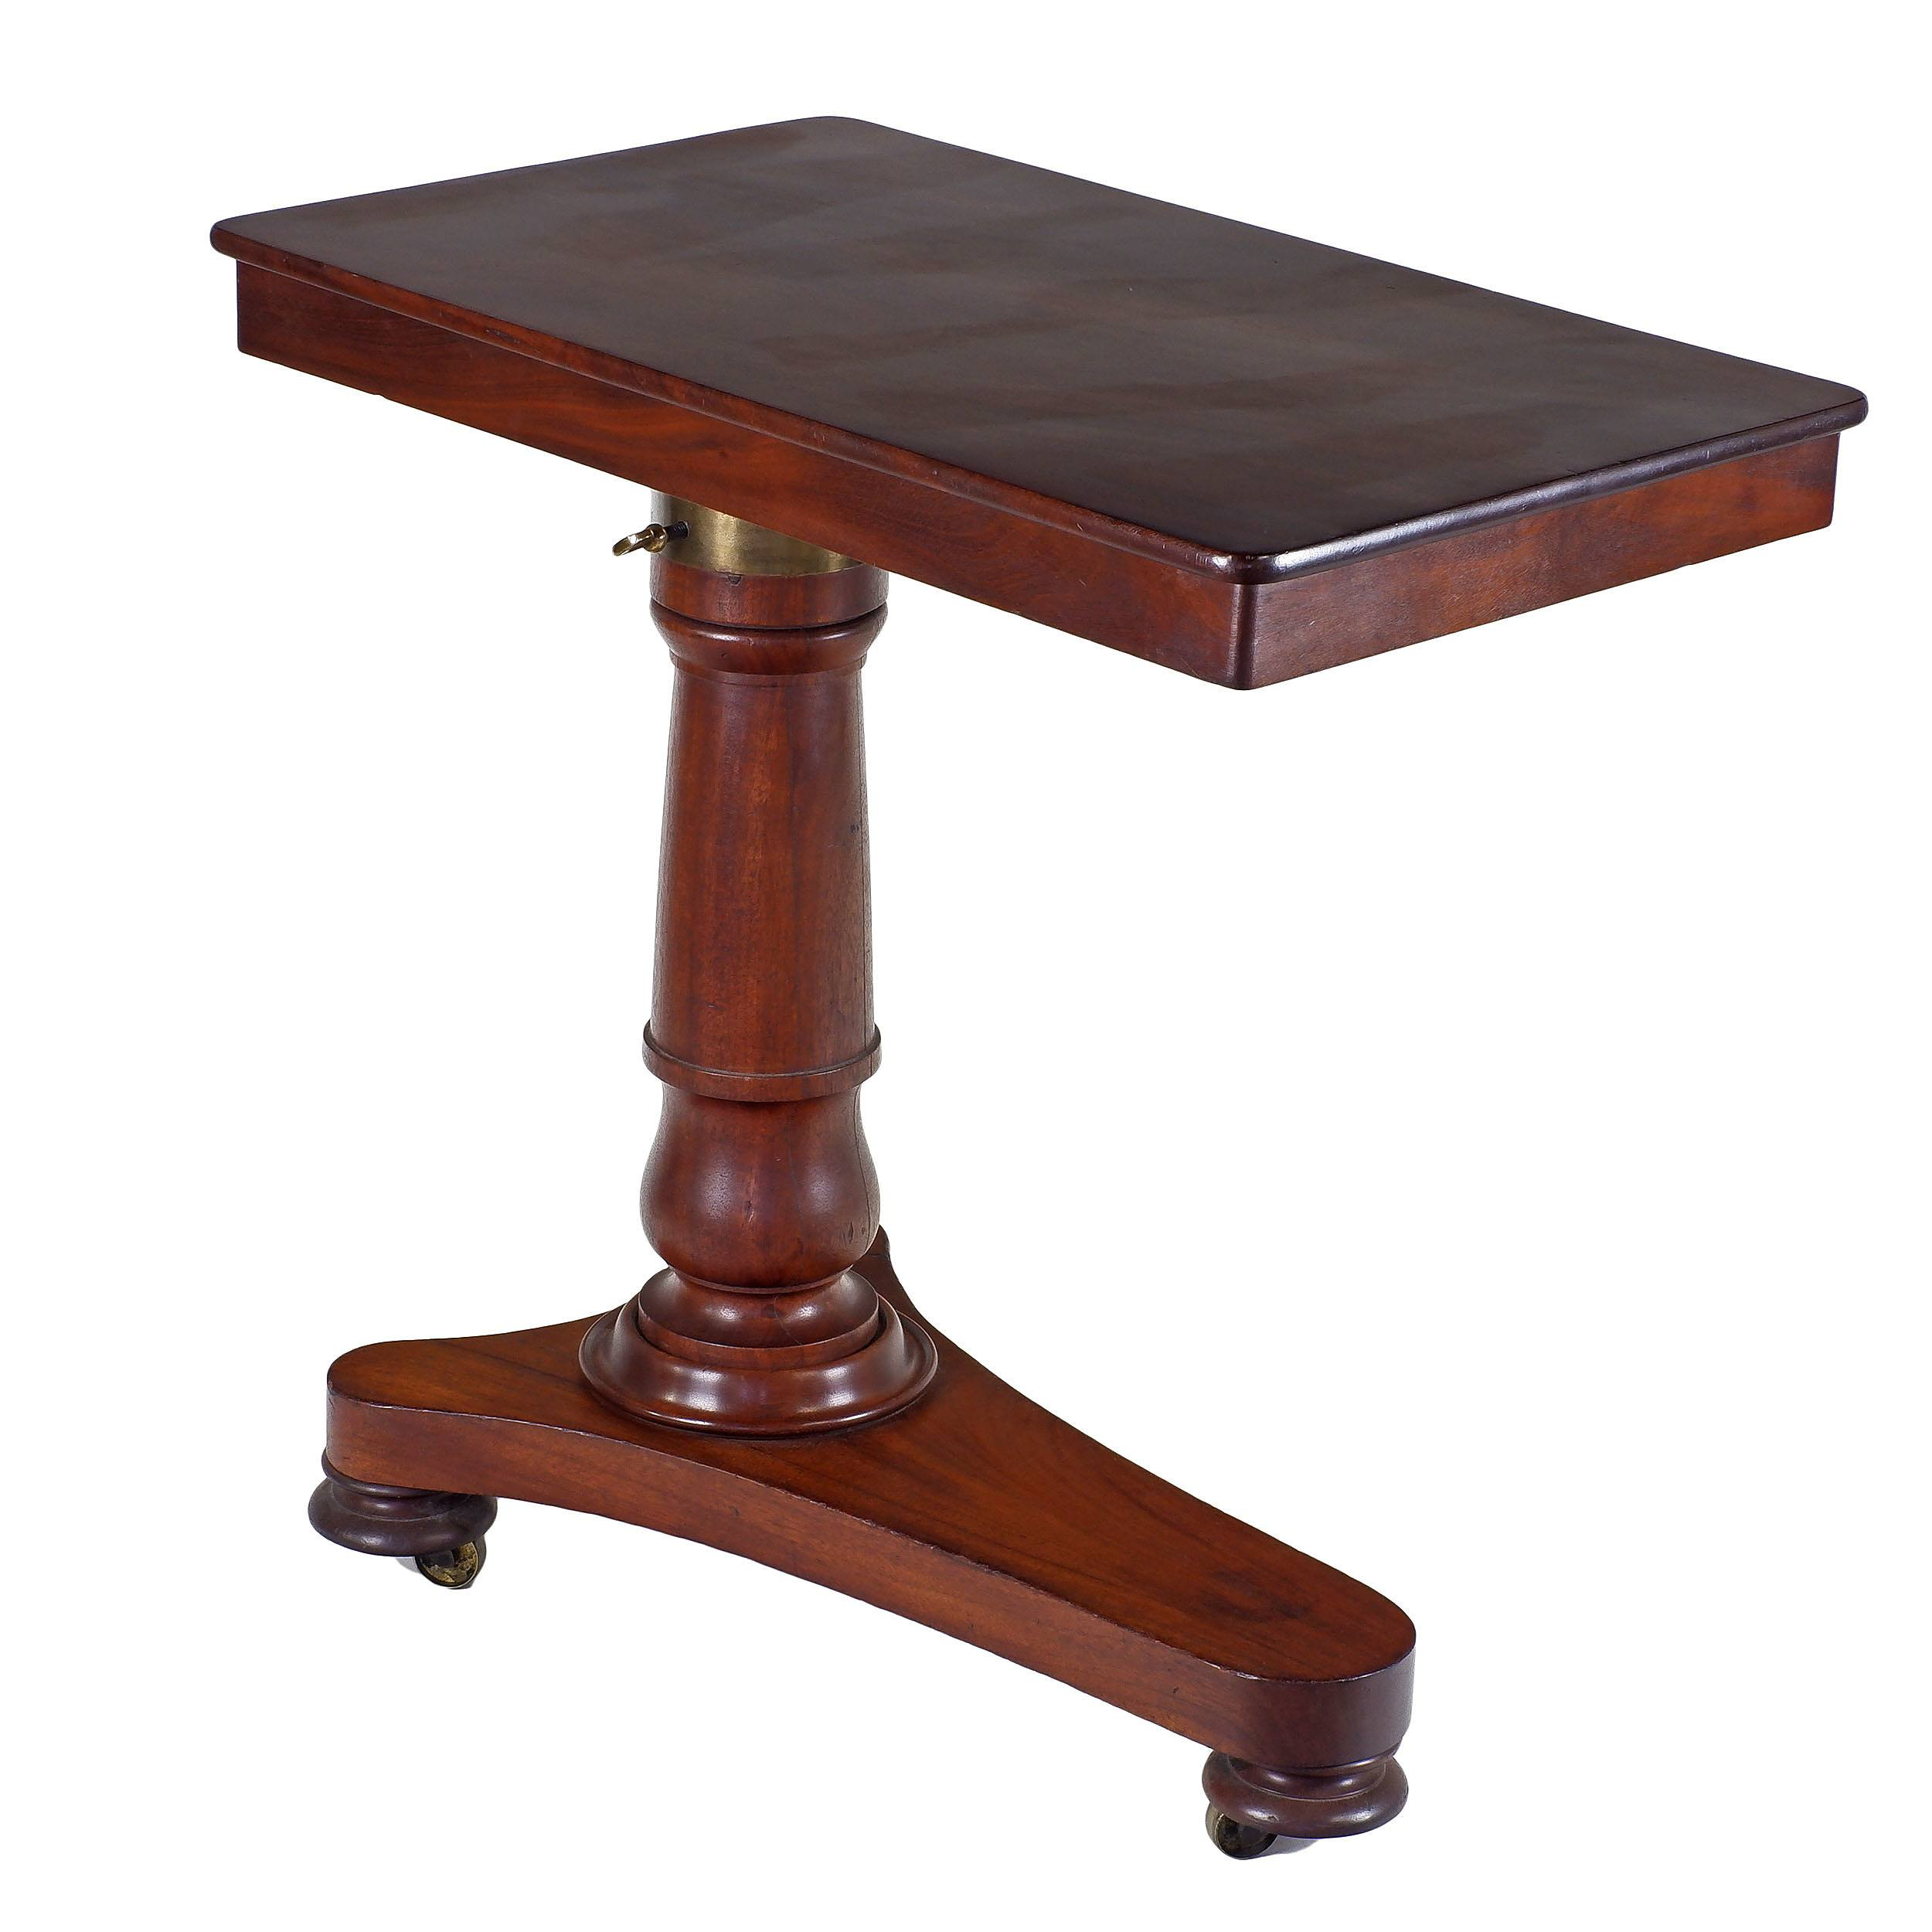 'Victorian Mahogany Adjustable Bedroom Reading Table Late 19th Century'